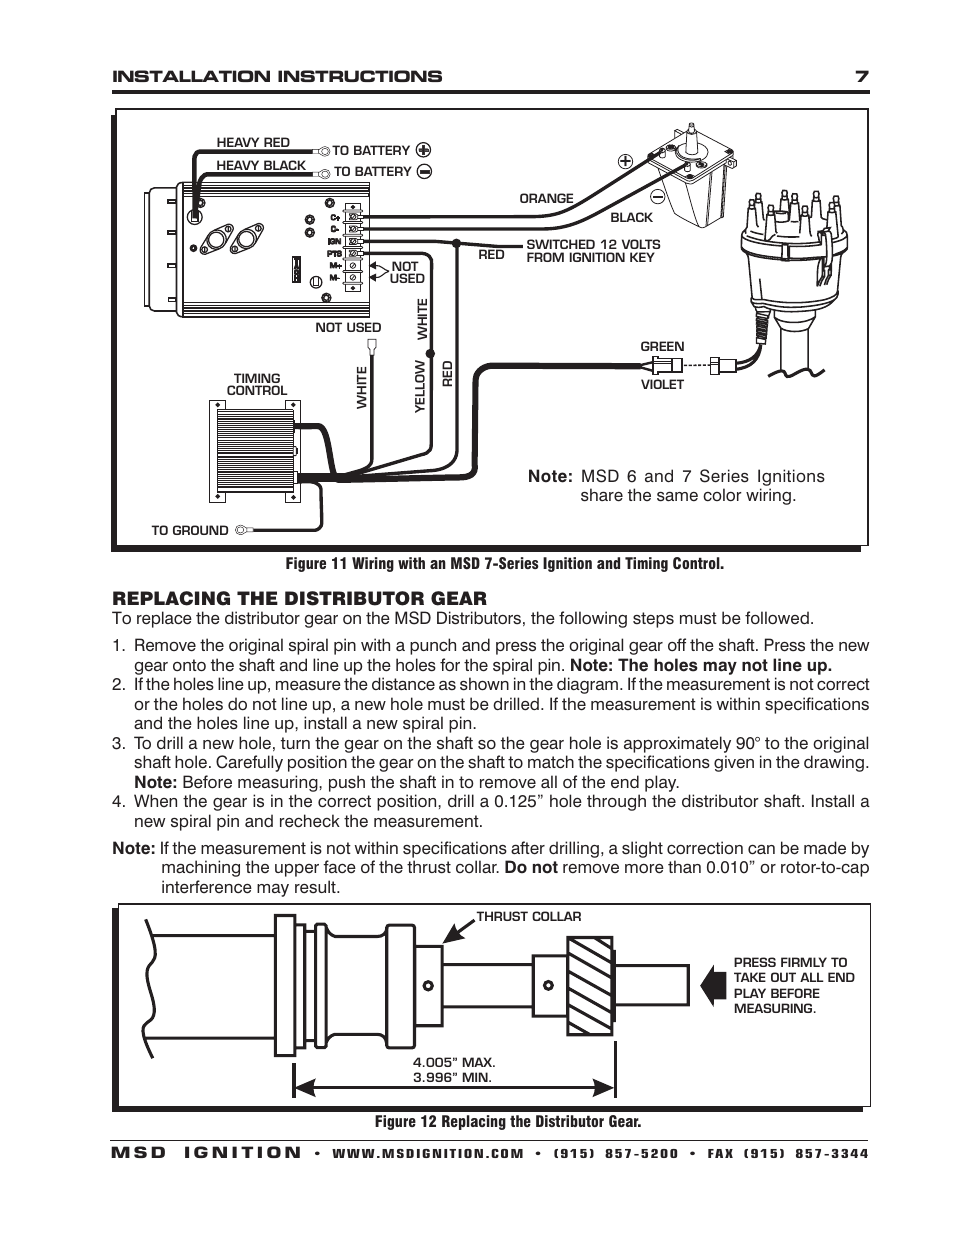 Ford Distributor Wiring Instructions Electrical Diagrams Replacing The Gear Msd 8584 V8 351w Billet Coil